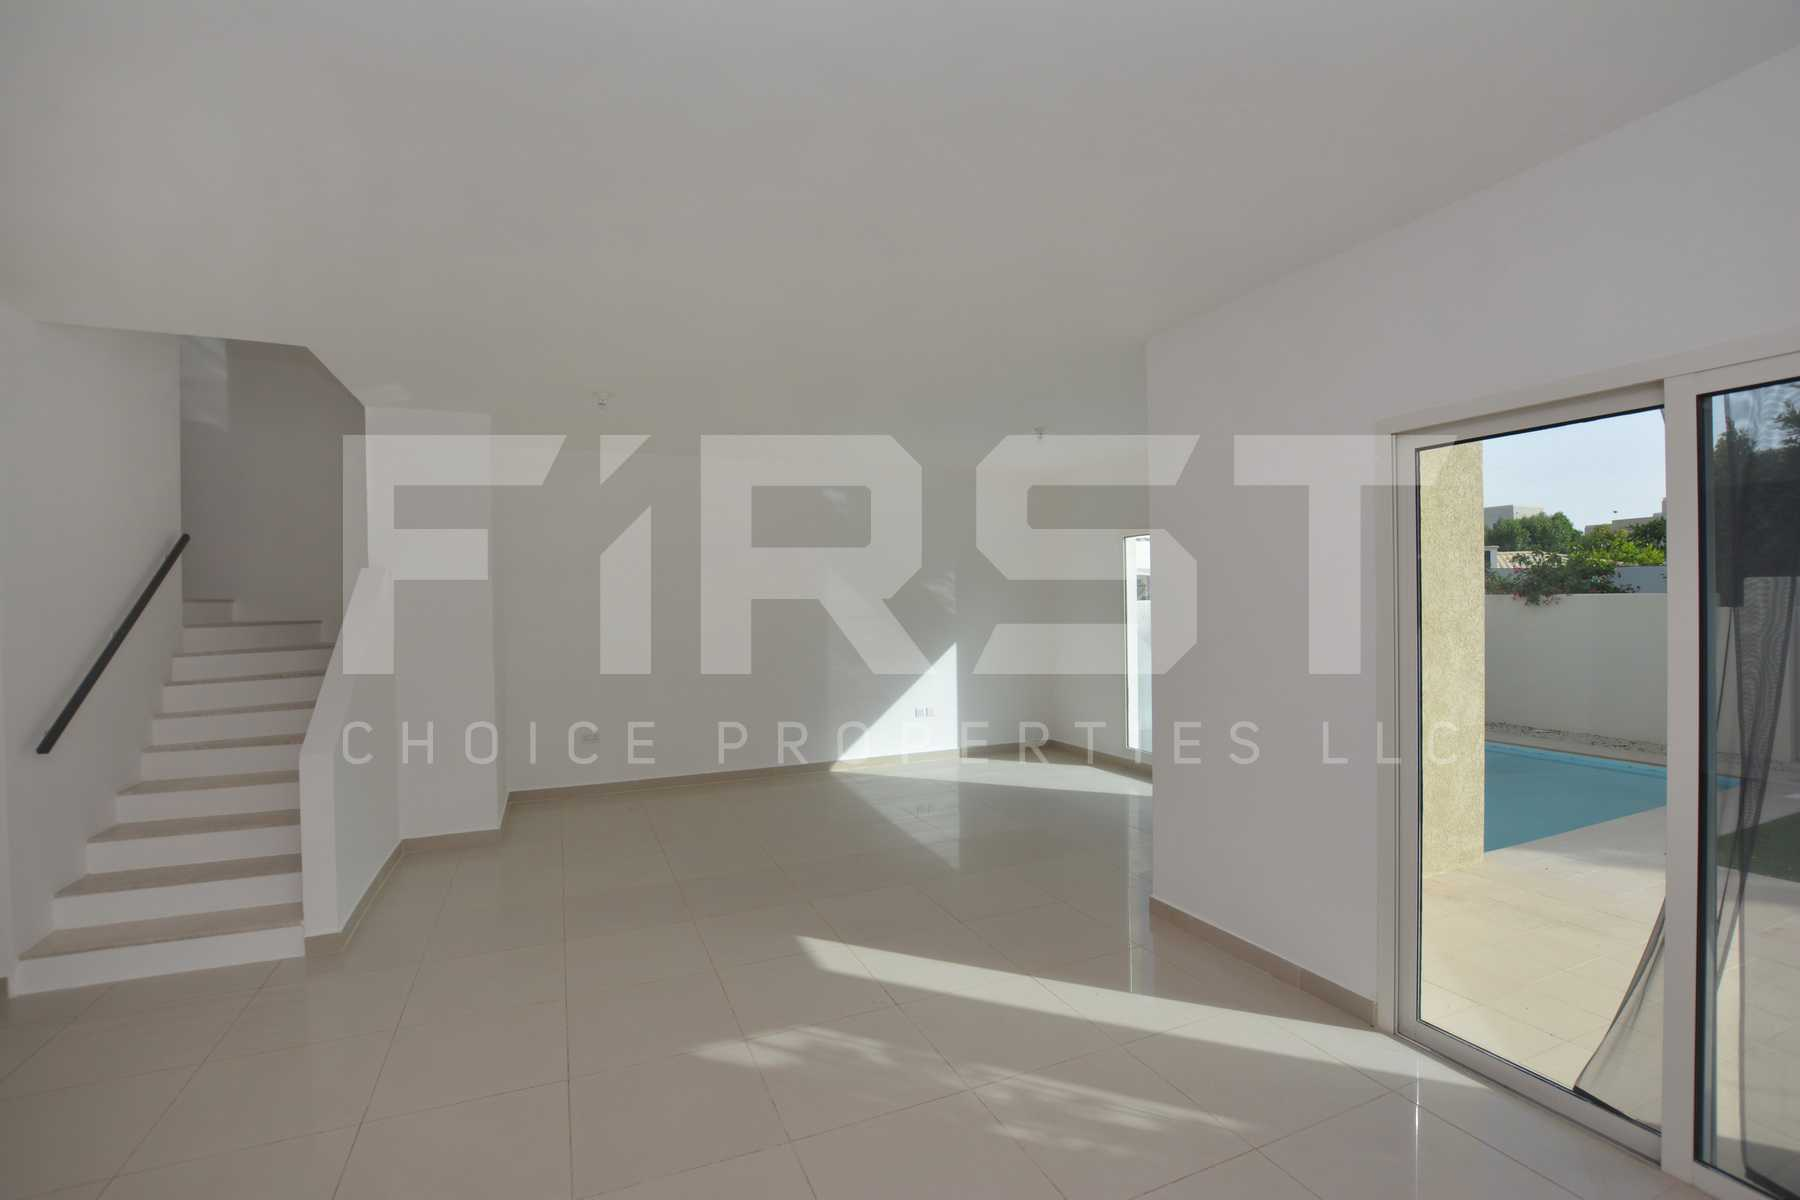 9. Internal Photo of 5 Bedroom Villa in Al Reef Villas 348.3 sq.m 3749 sq.ft (122).jpg